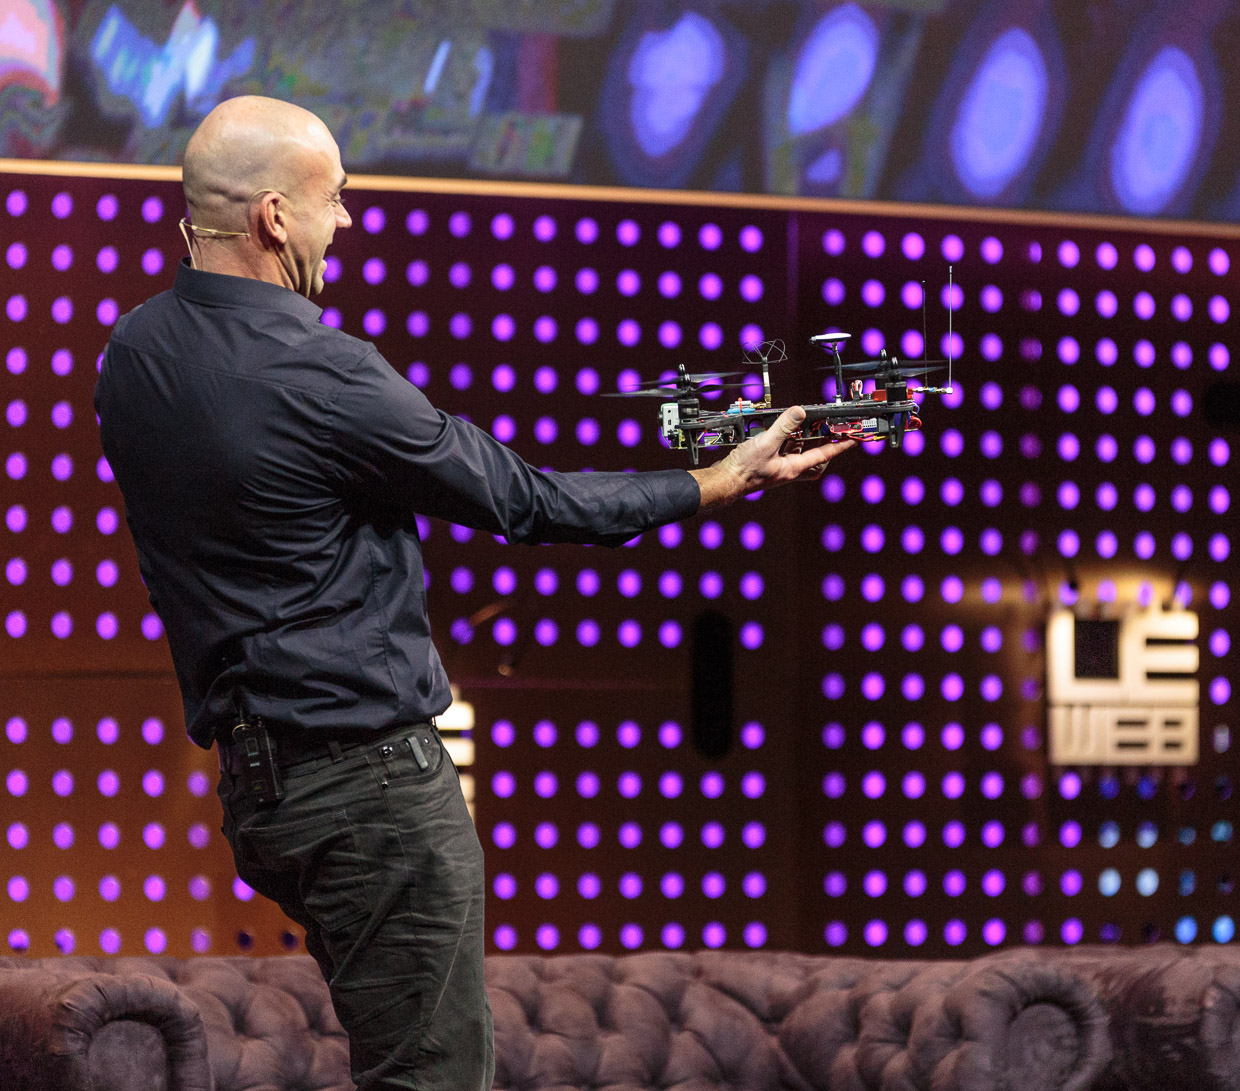 LeWeb conference founder Loic Le Meur flinches and laughs as a Team BlackSheep TBS Discovery quadcopter alights on his hand at LeWeb 2012.